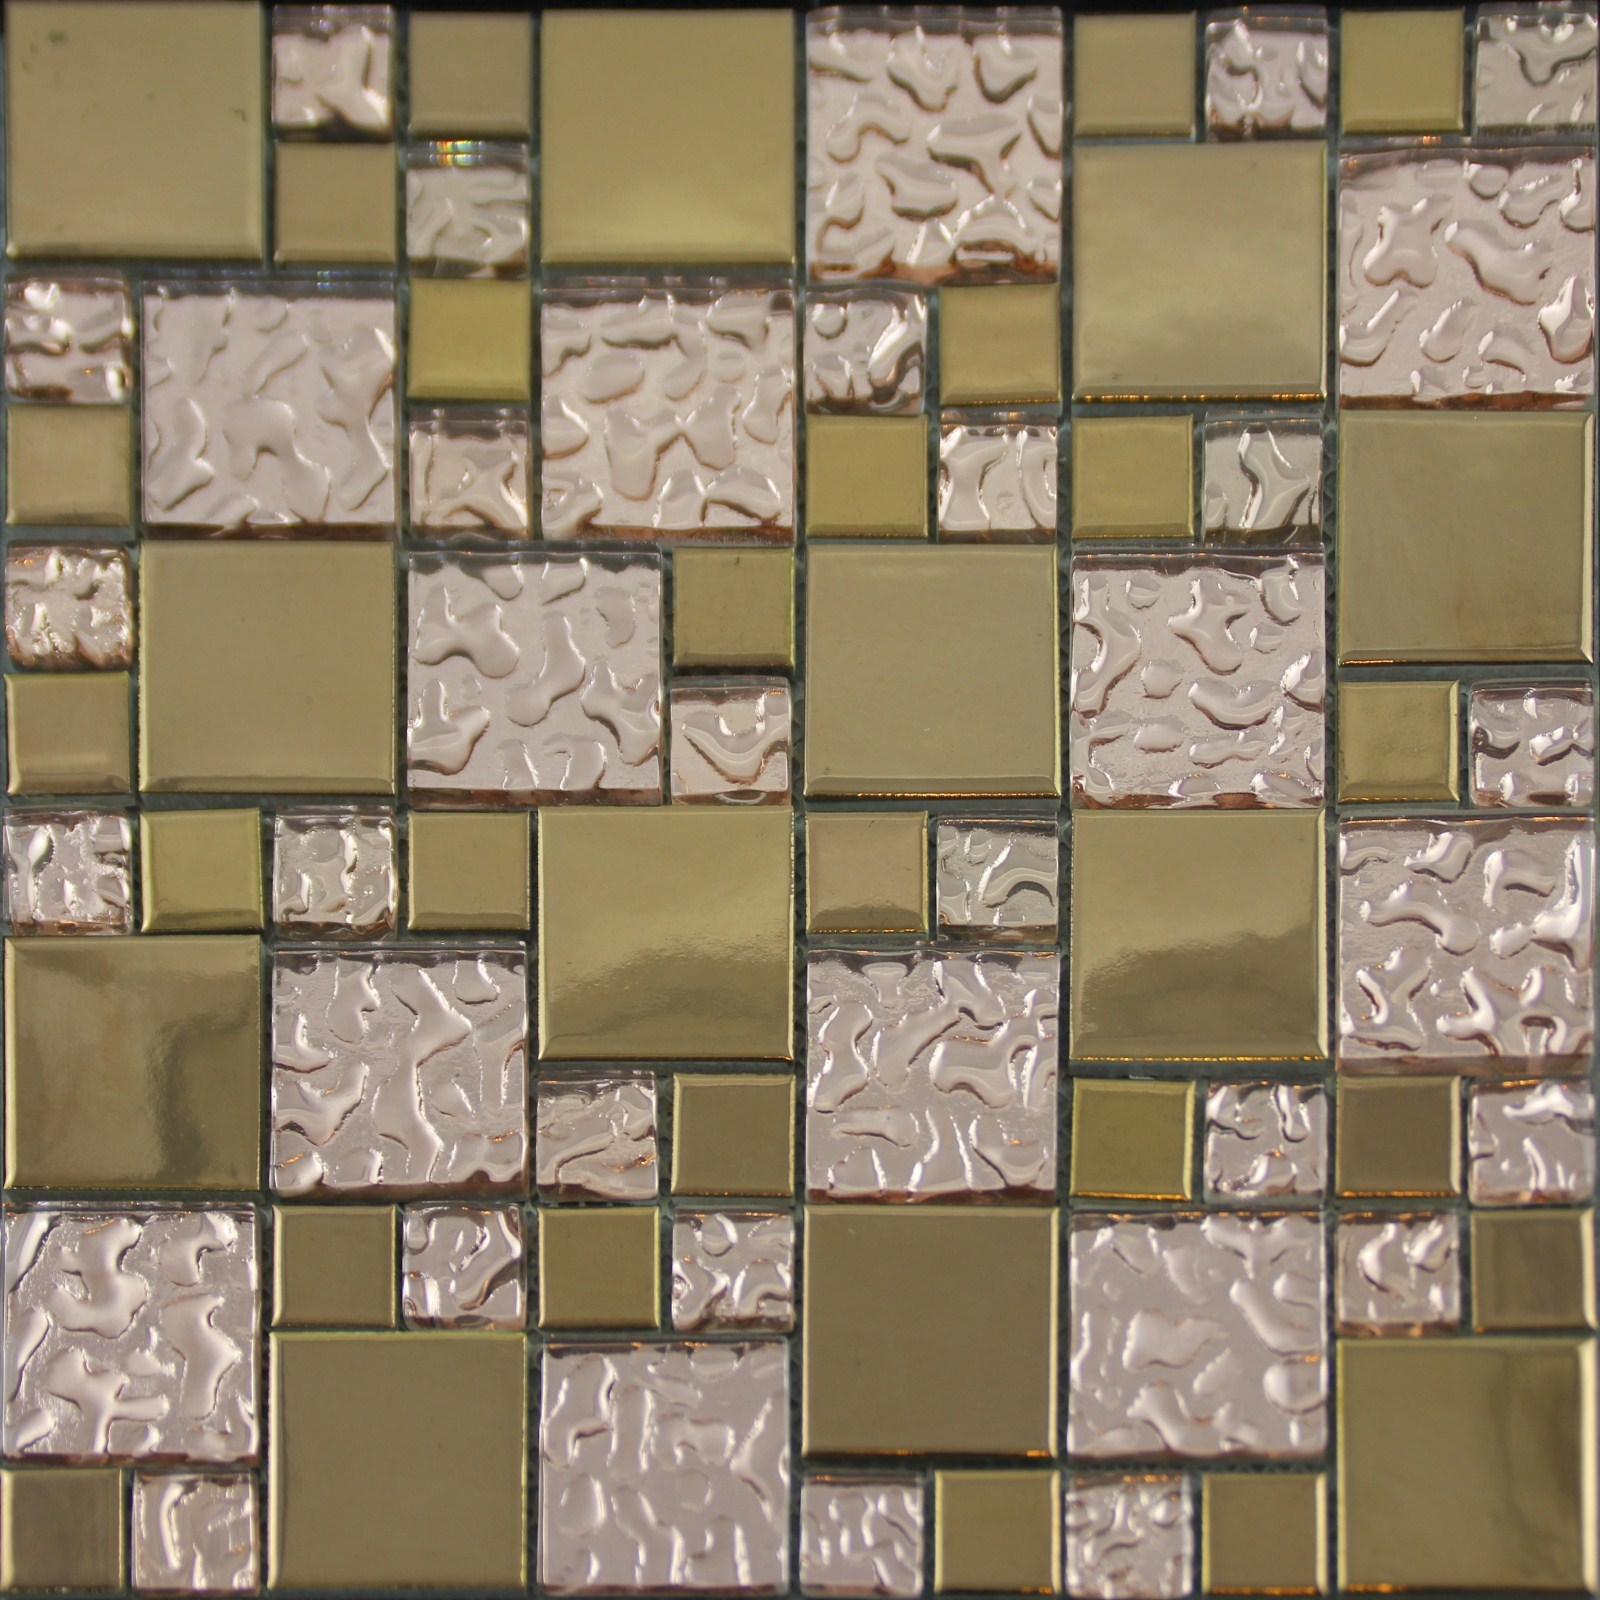 Porcelain Tile Kitchen Backsplash Gold Porcelain Tile Designs Bathroom Wall Copper Glass Mosaic